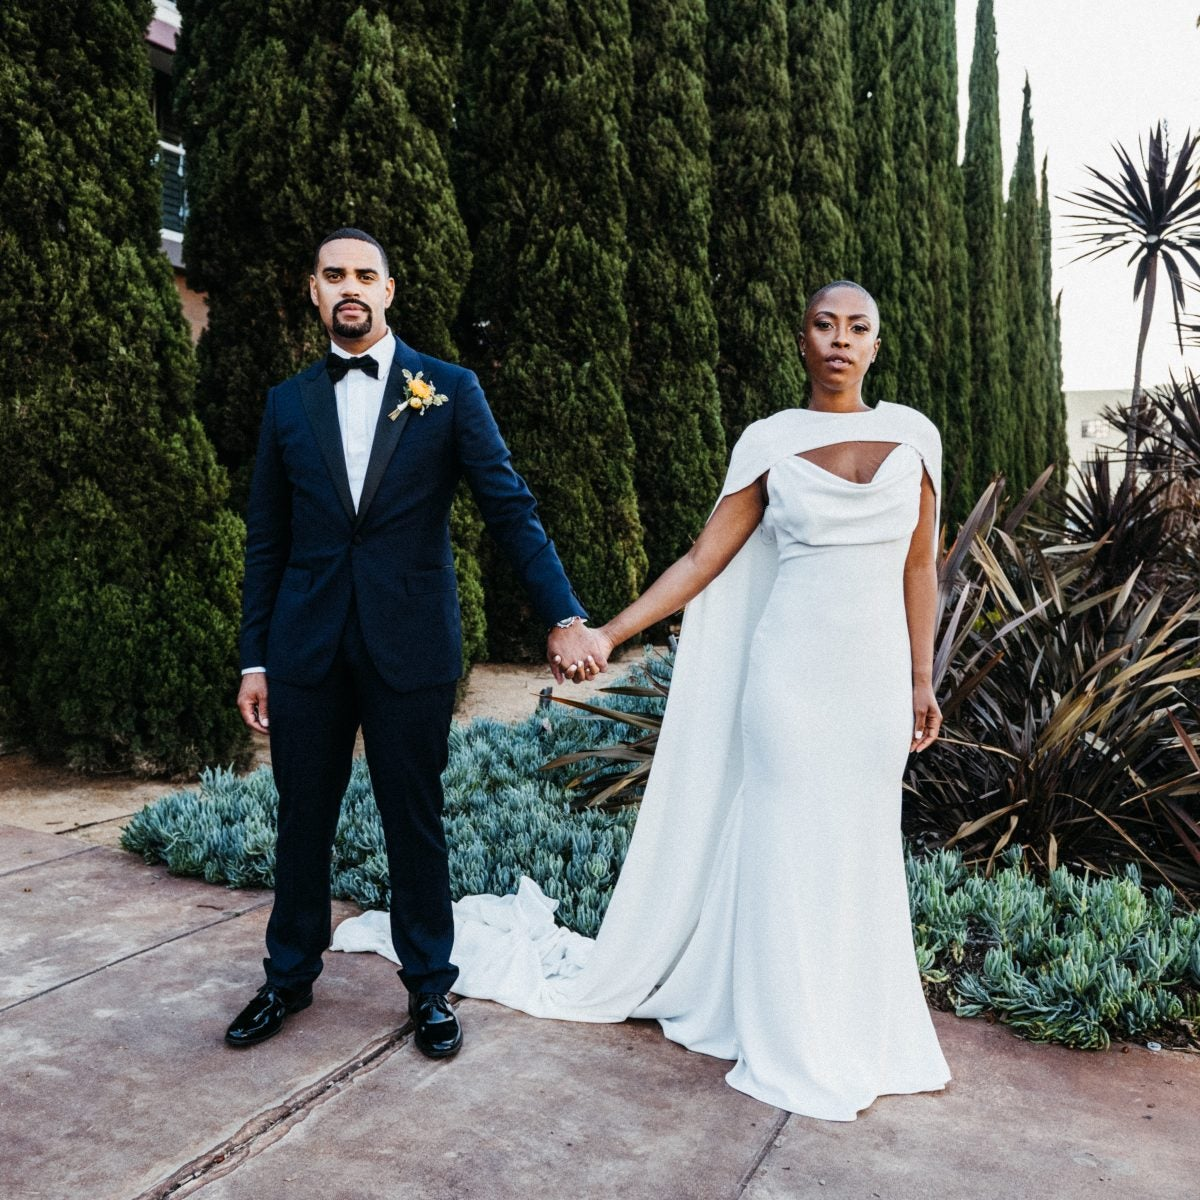 Bridal Bliss: Chelsea And Emerson's SoCal Ceremony Had Palm Trees, Ocean Views And 12 Guests